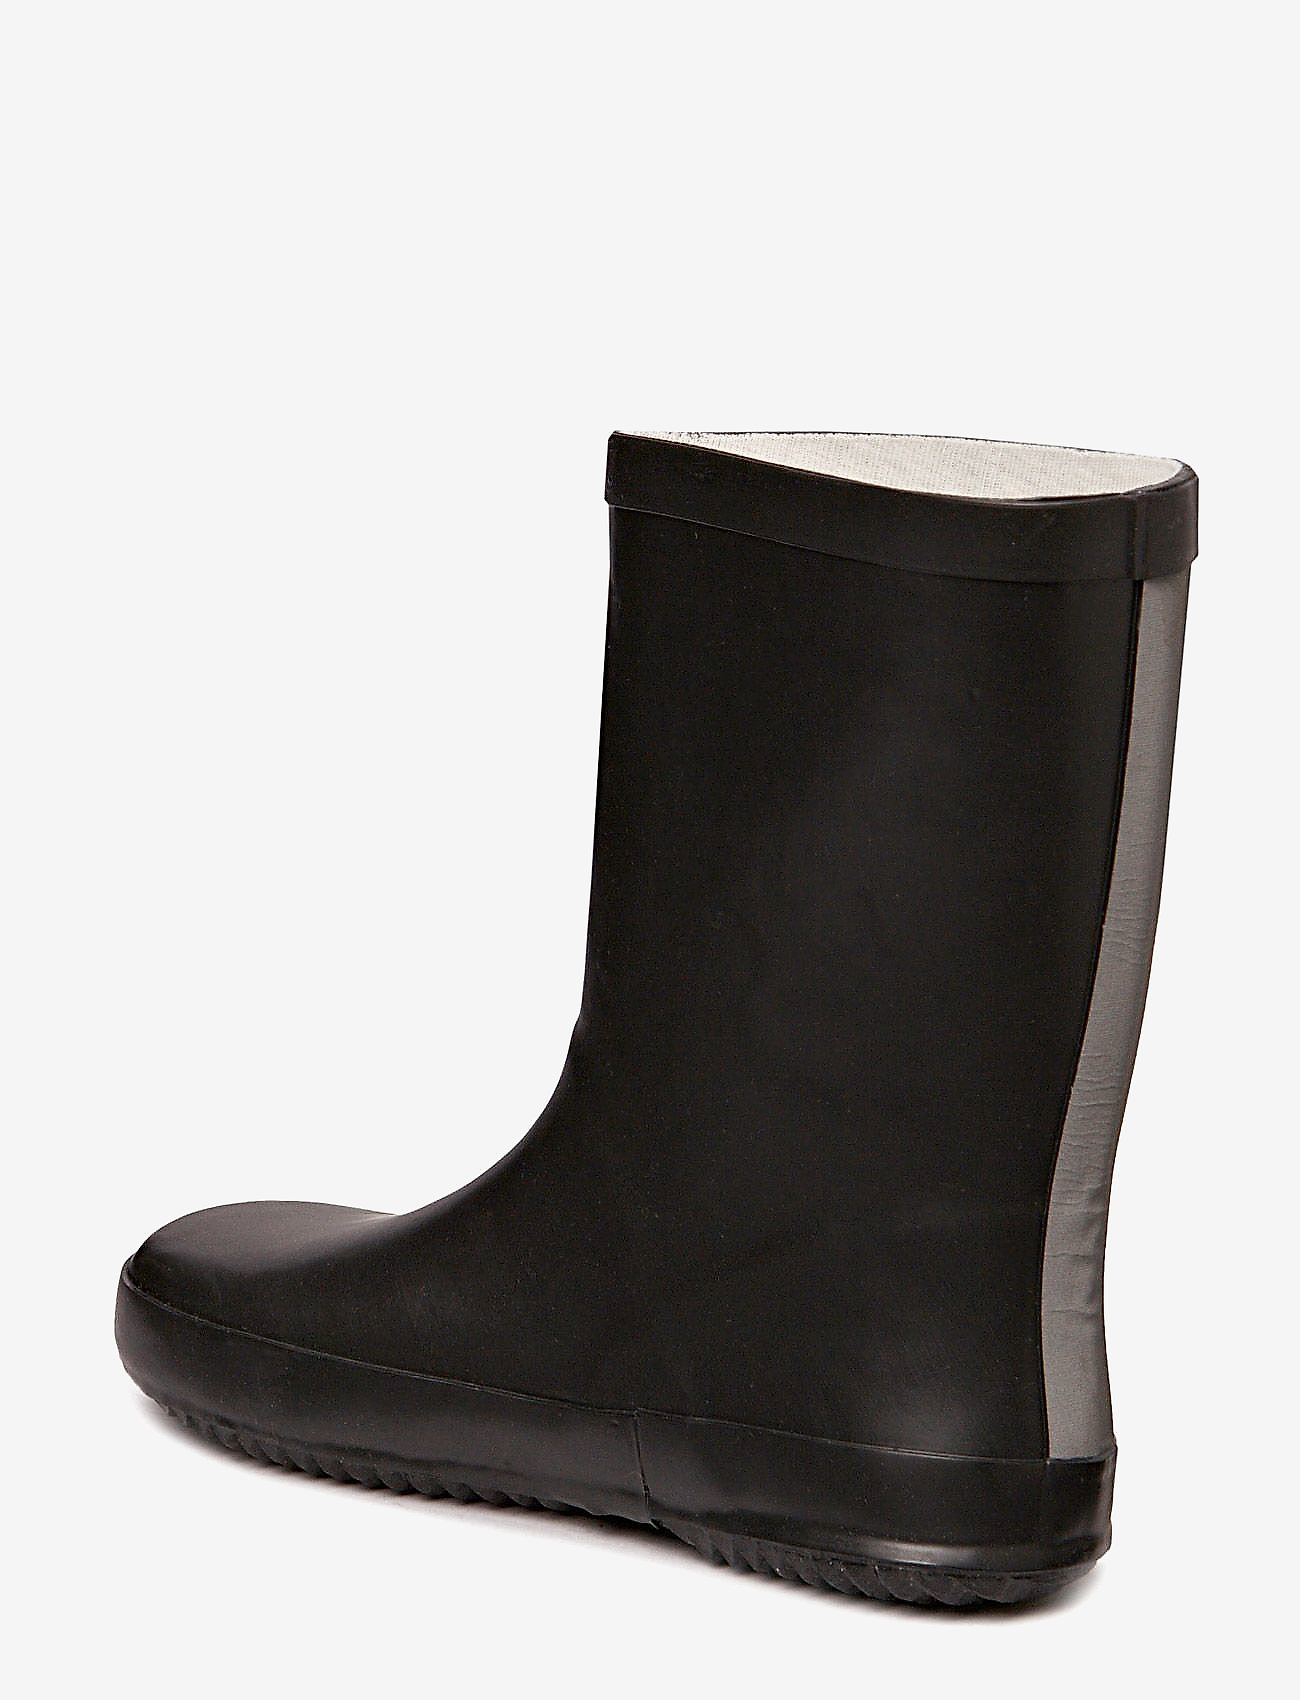 Mikk-Line - Wellies - solid colour - gummistövlar - 190/black - 1